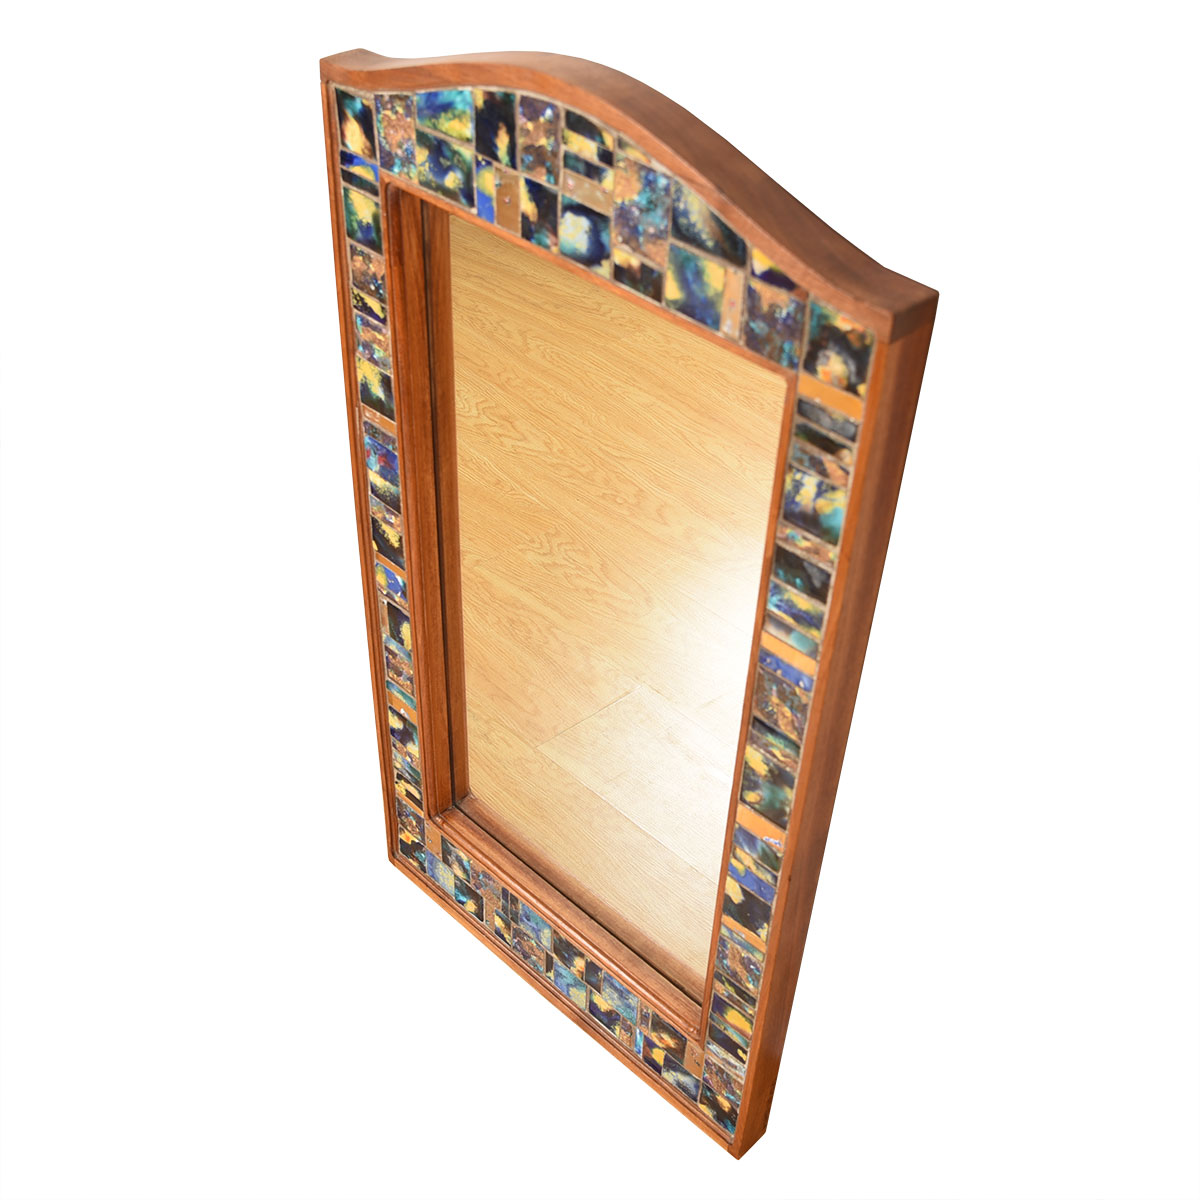 Large Mid Century Modern Corniced Mosaic Tiled Mirror